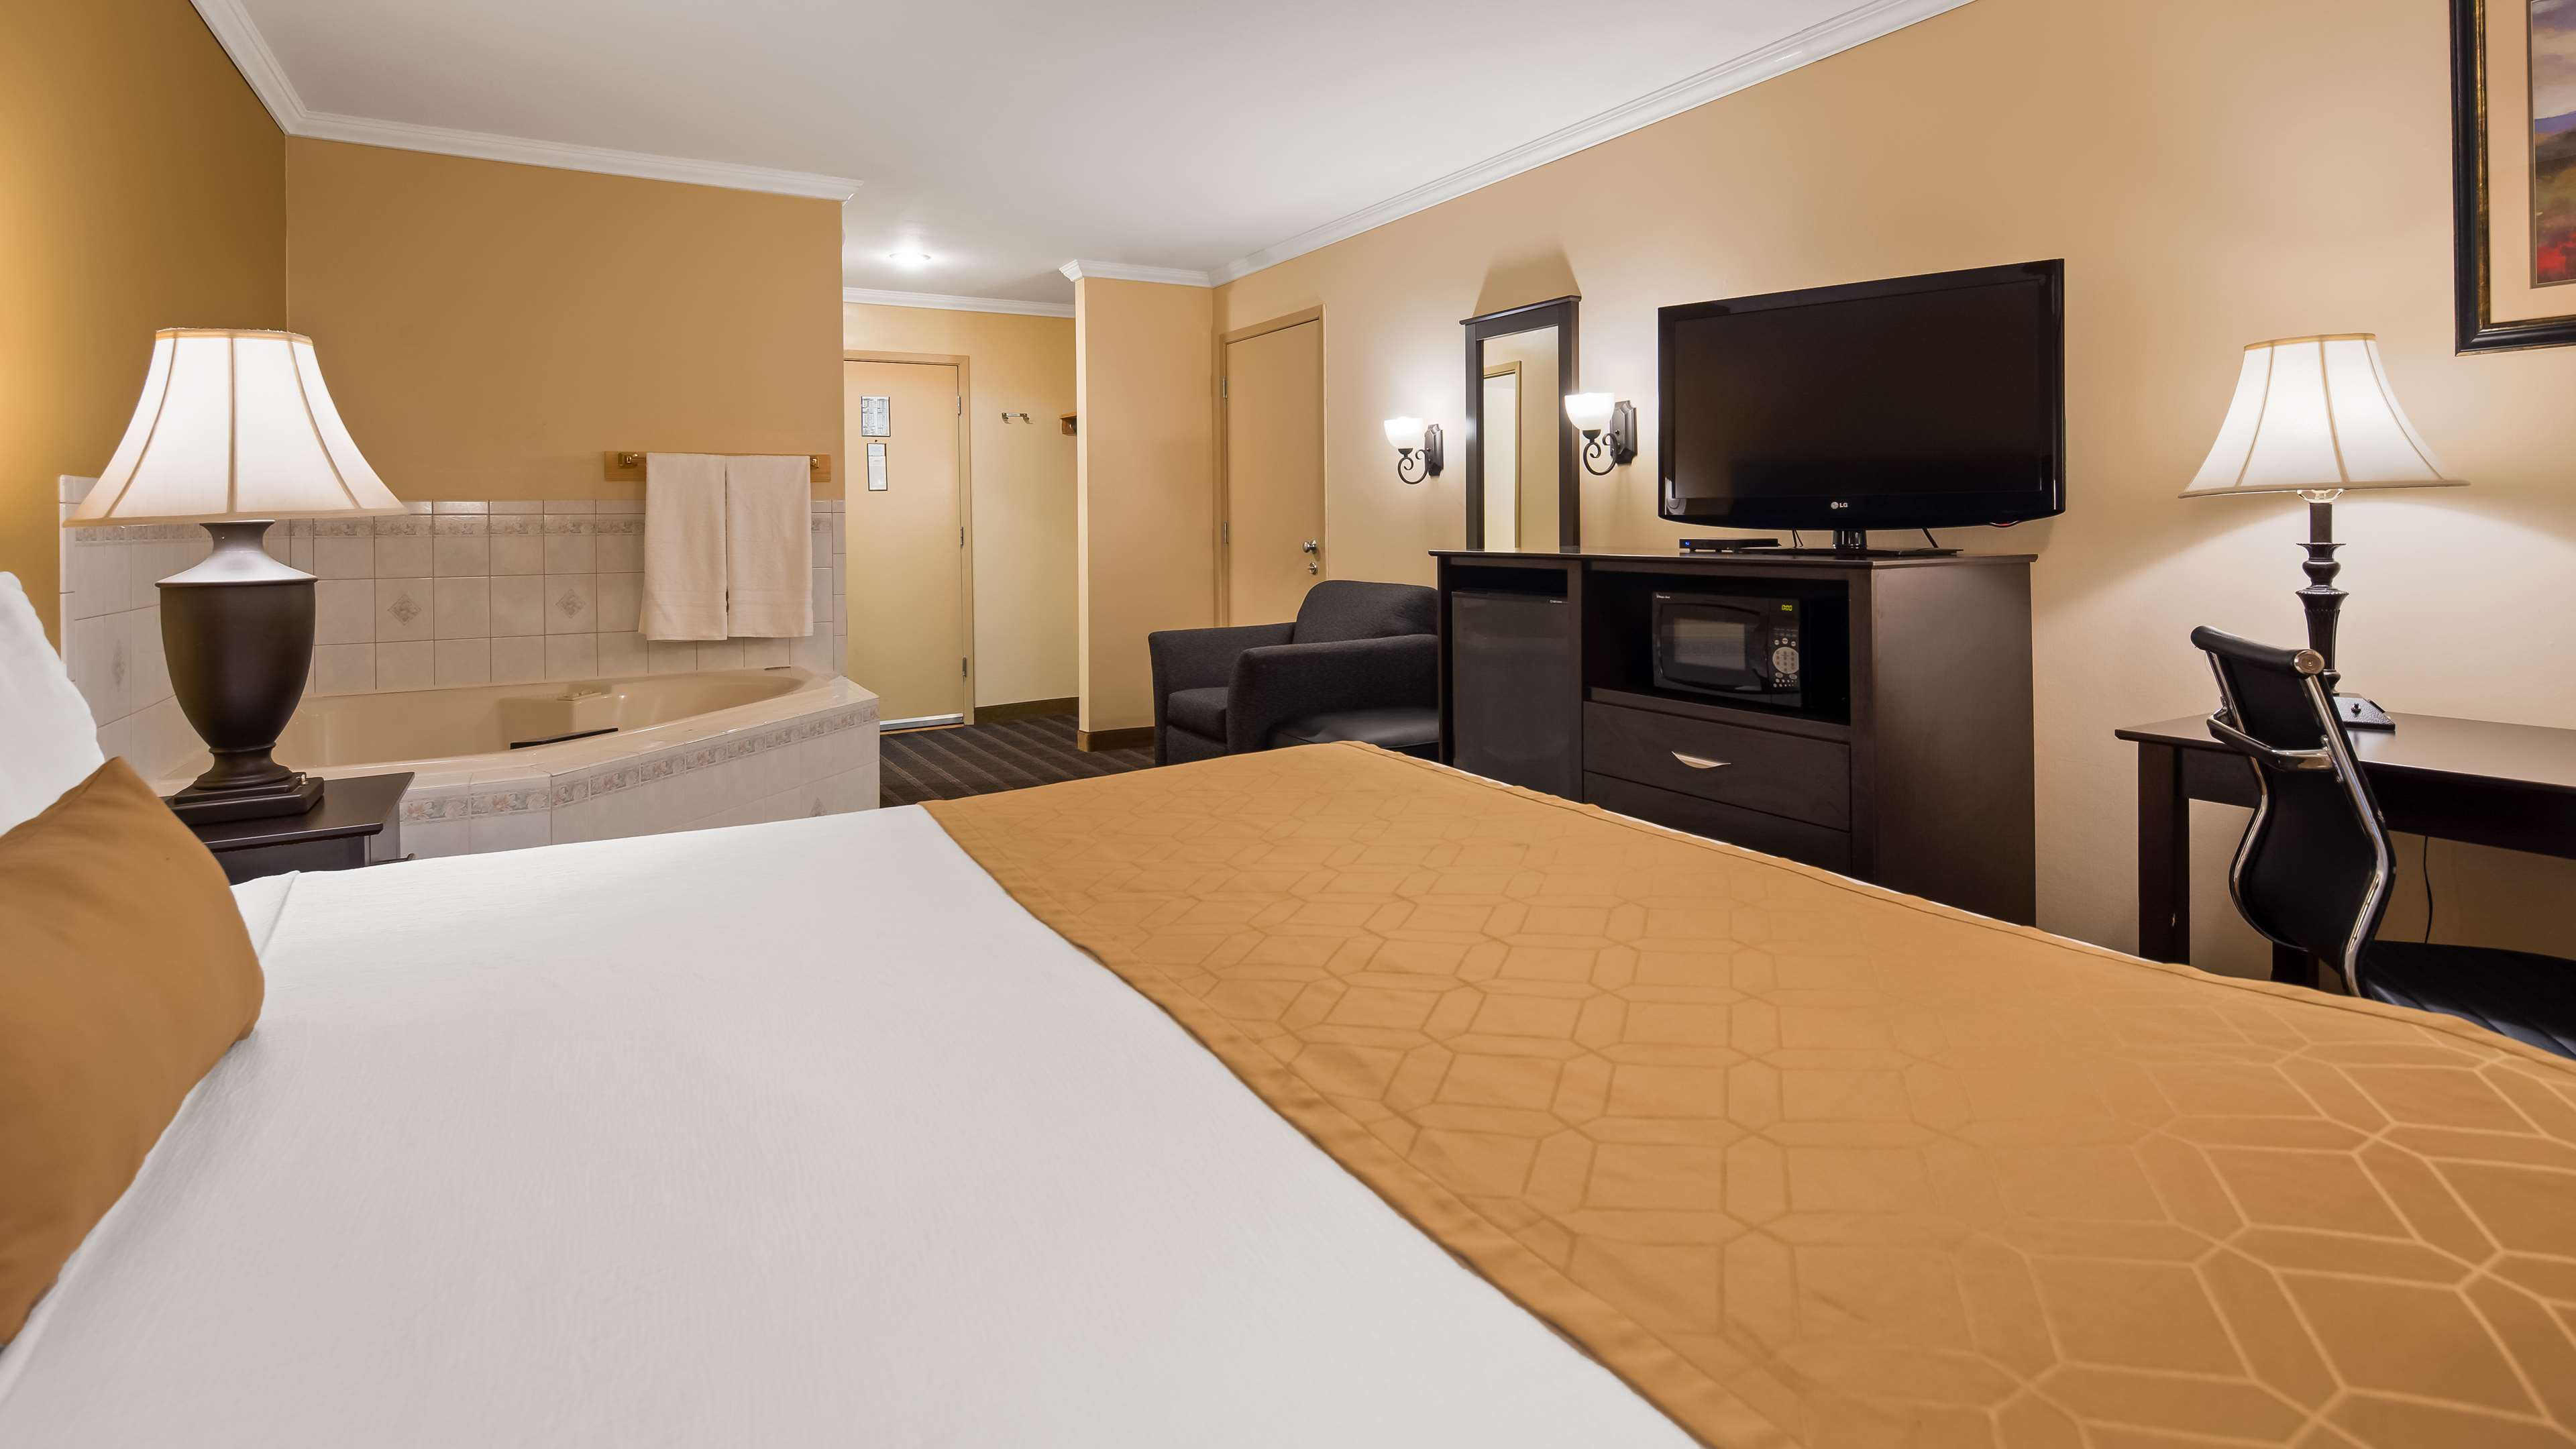 Best Western Inn & Suites image 6